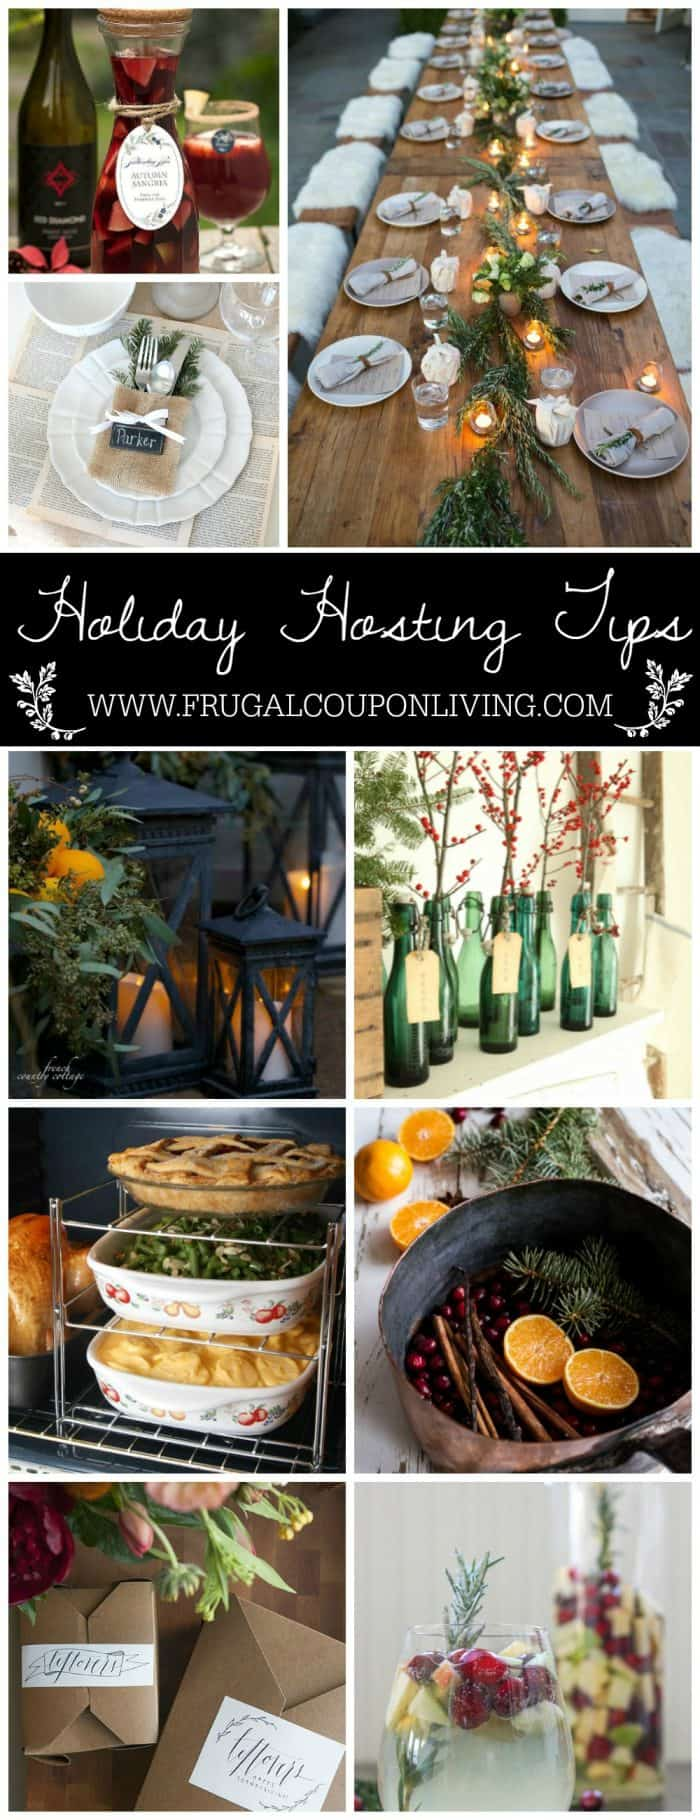 Hosting-Tips-frugal-coupon-living-long